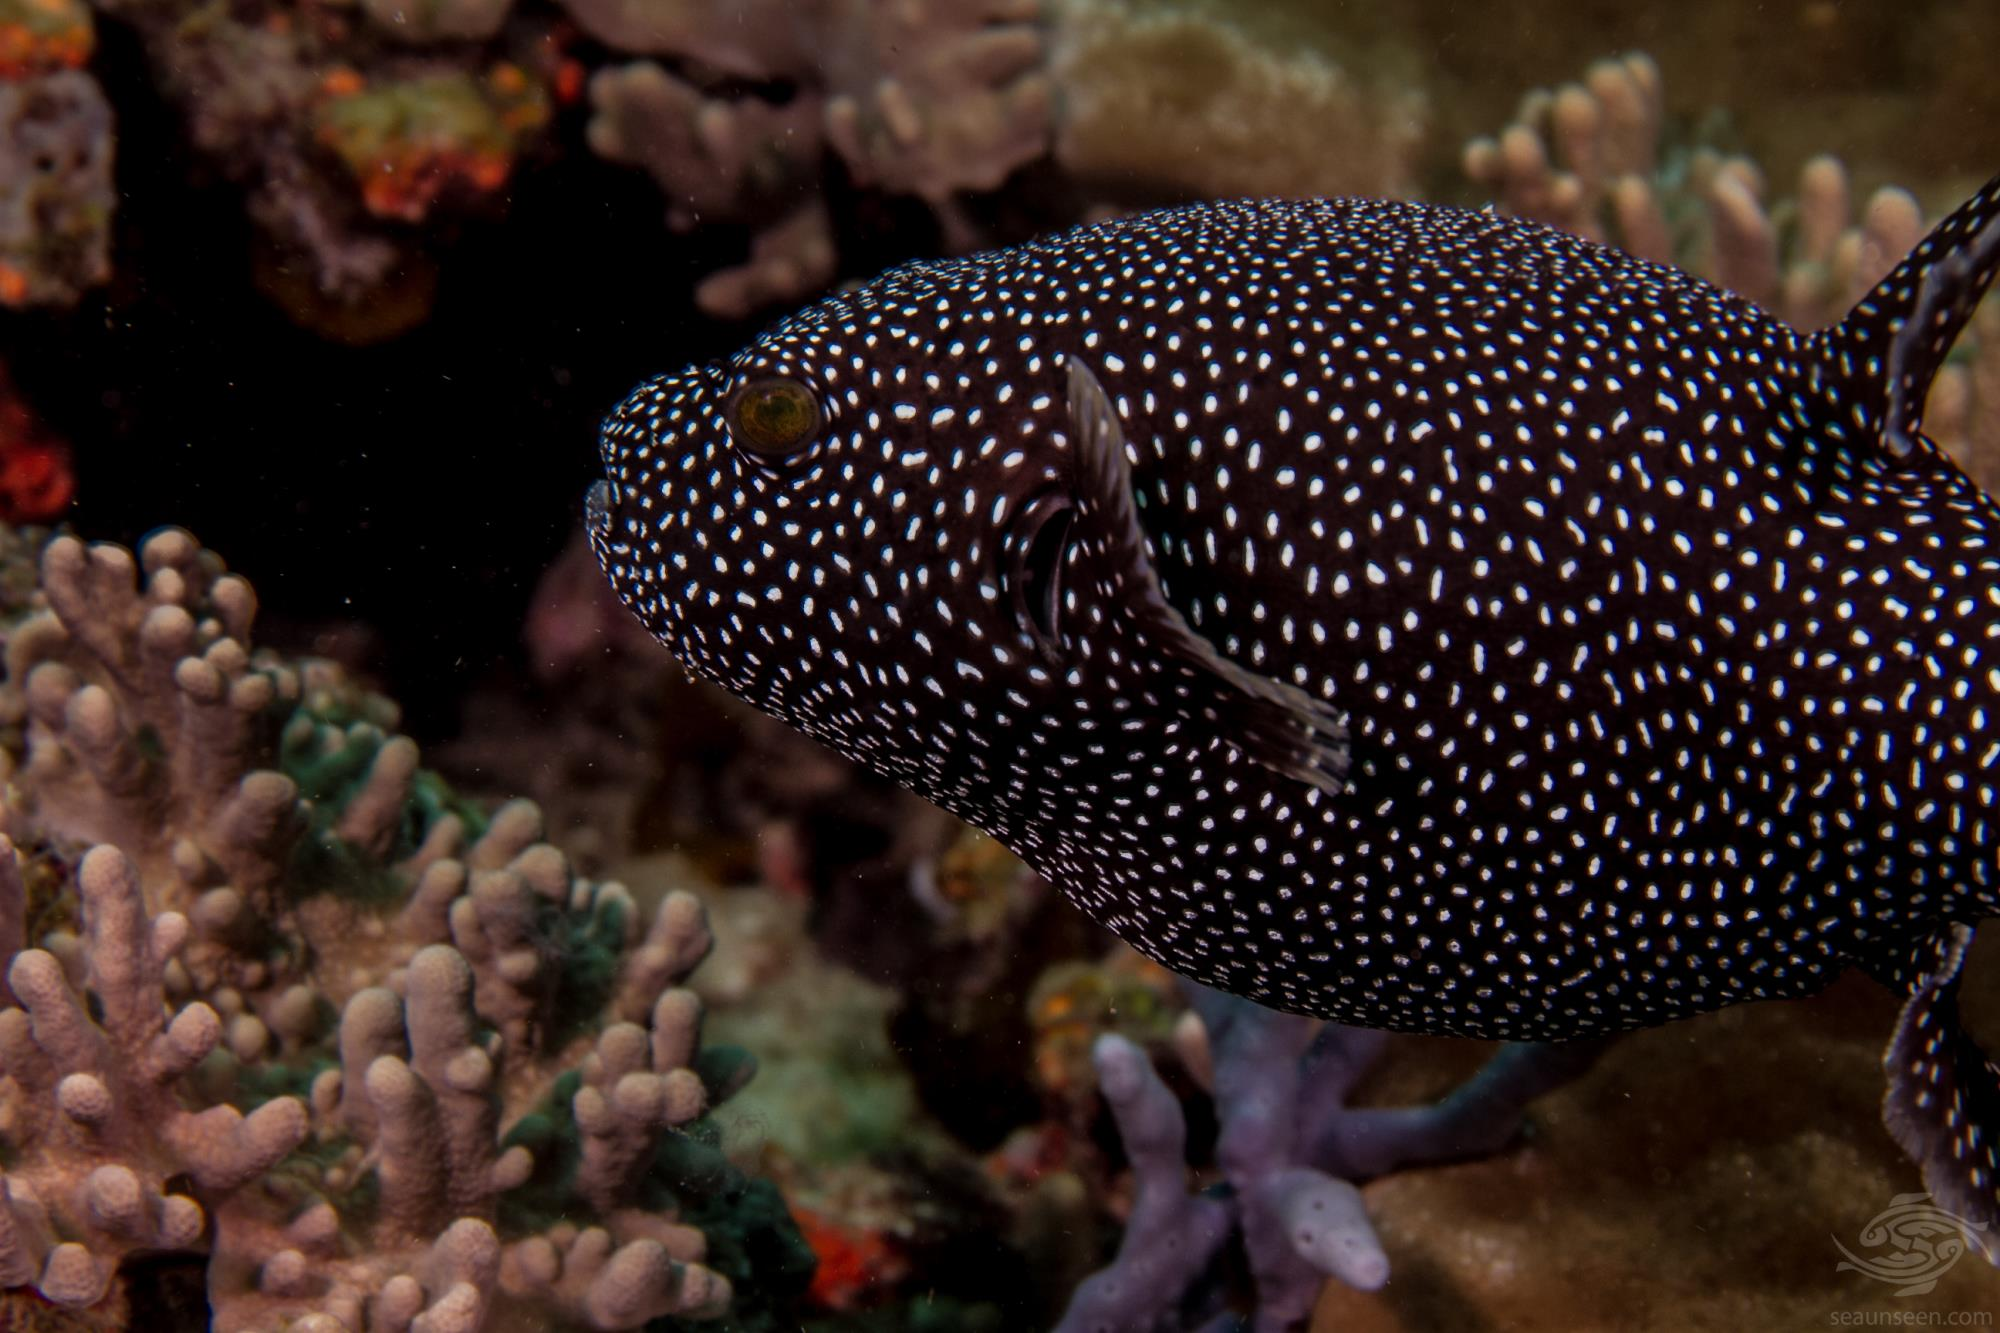 Arothron meleagris, guineafowl pufferfish or golden pufferfish